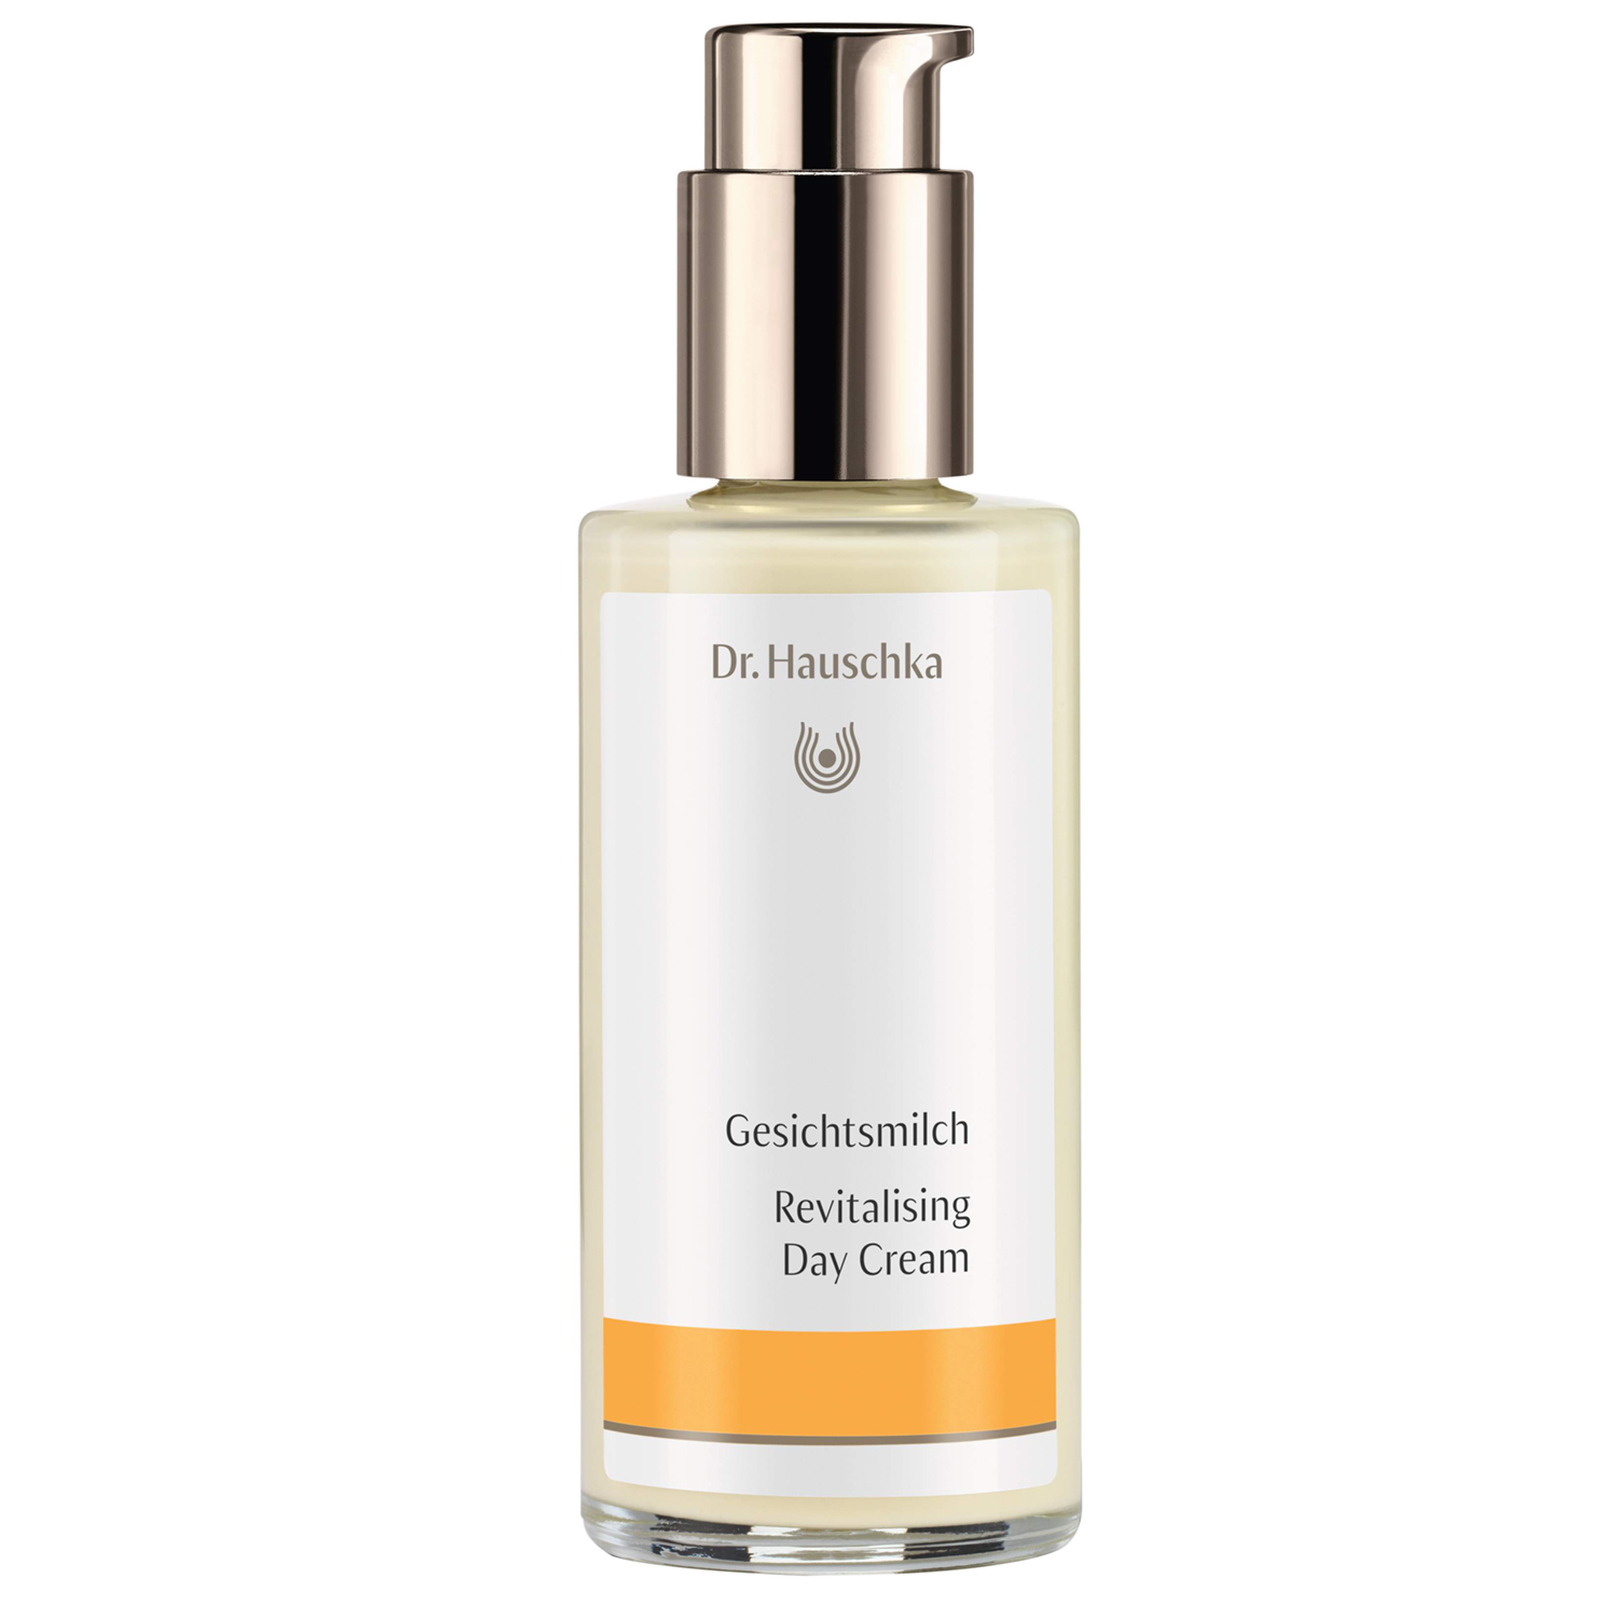 Dr. Hauschka Face Care Revitalising Day Cream 100ml